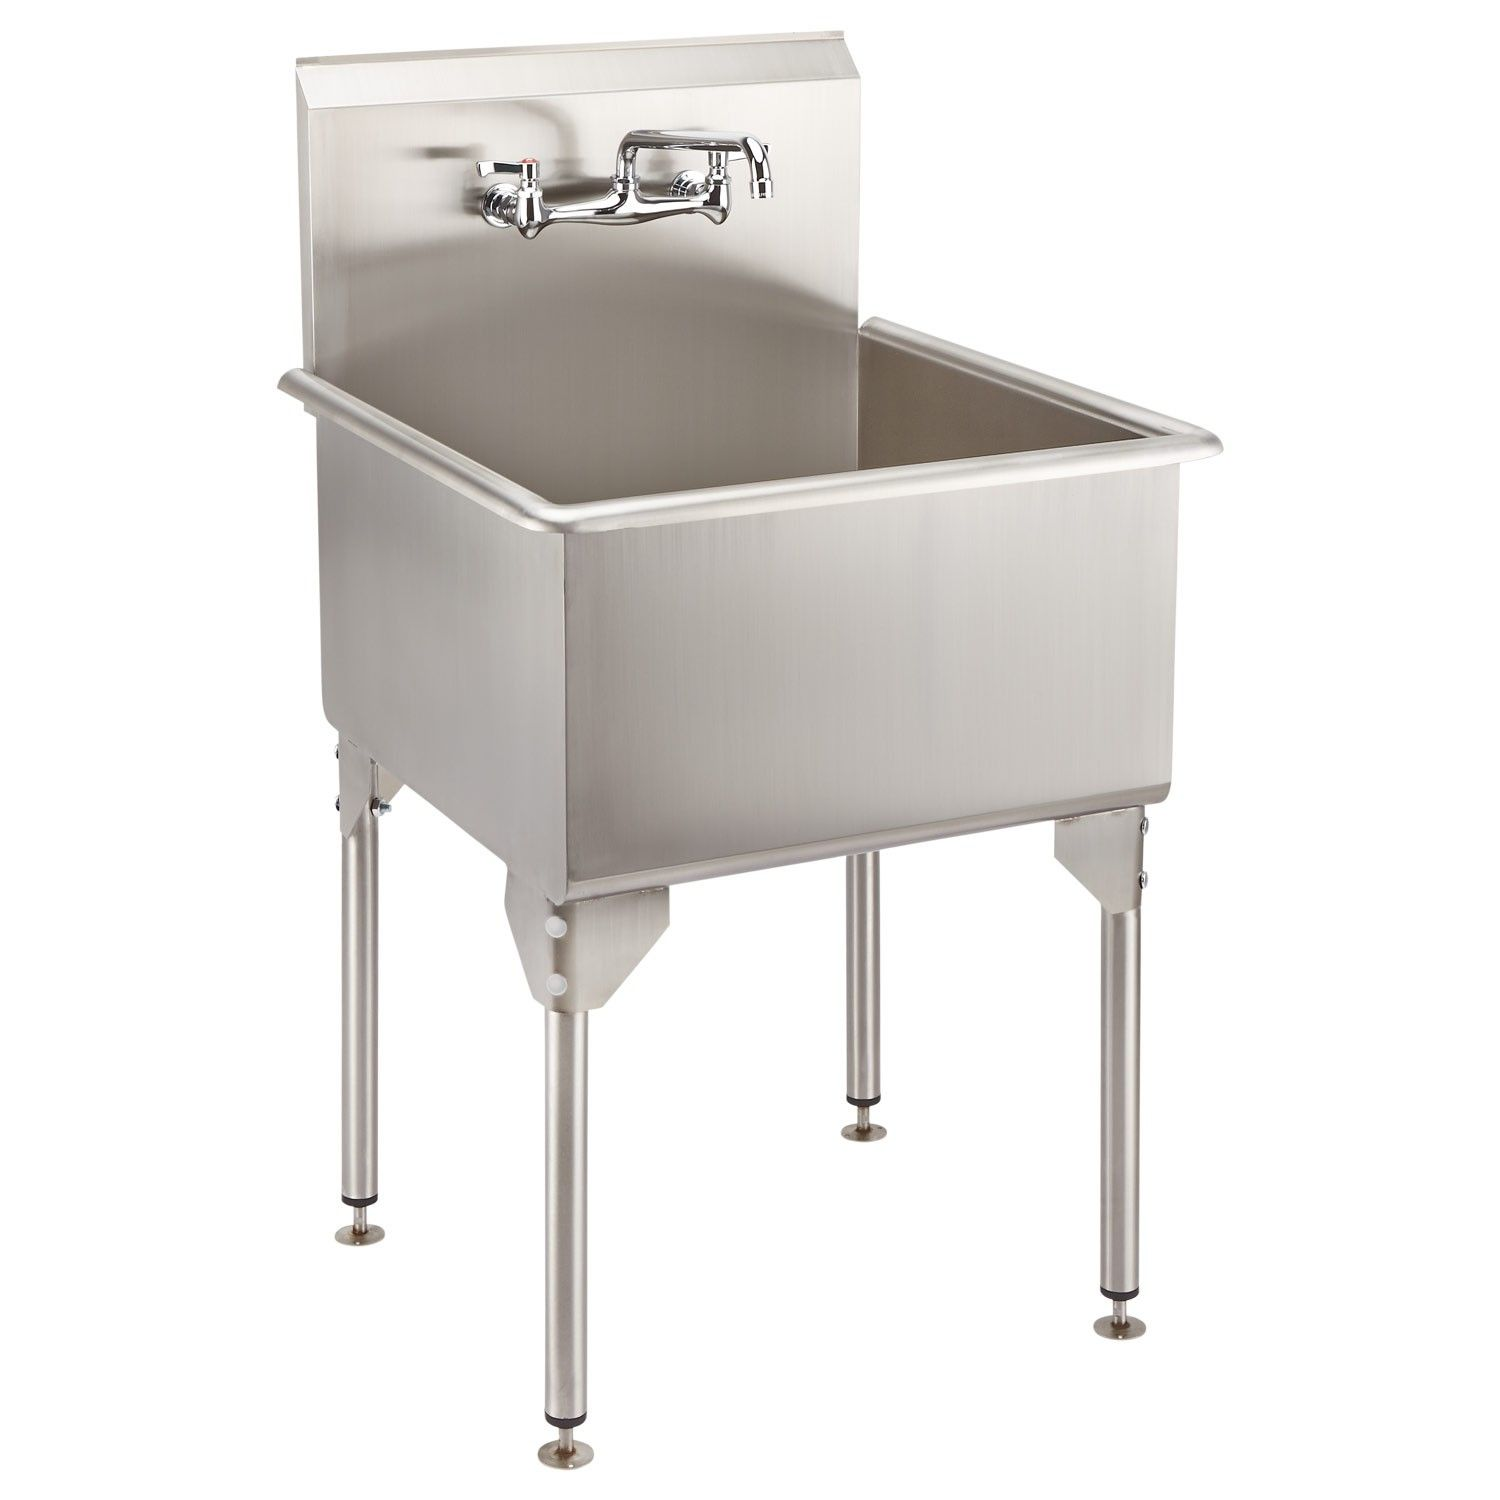 27 Stainless Steel Utility Sink Kitchen Stainless Steel